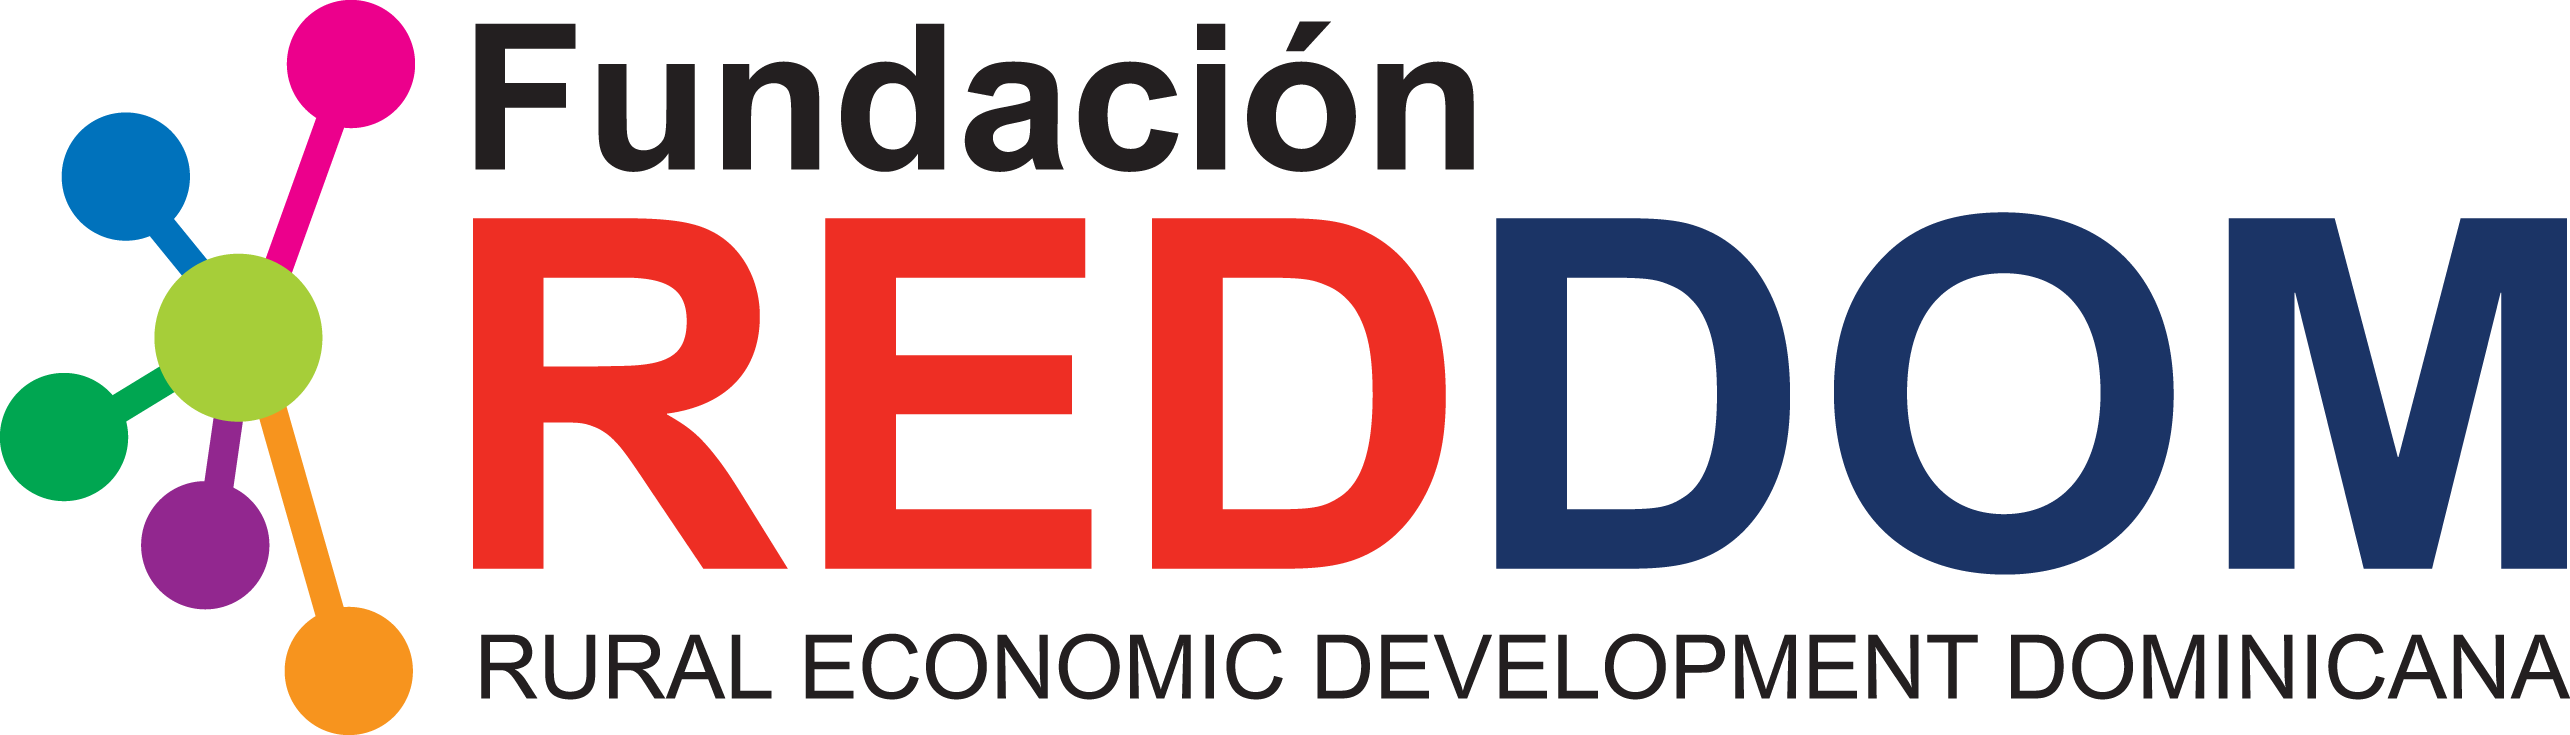 Rural Economic Development Dominicana